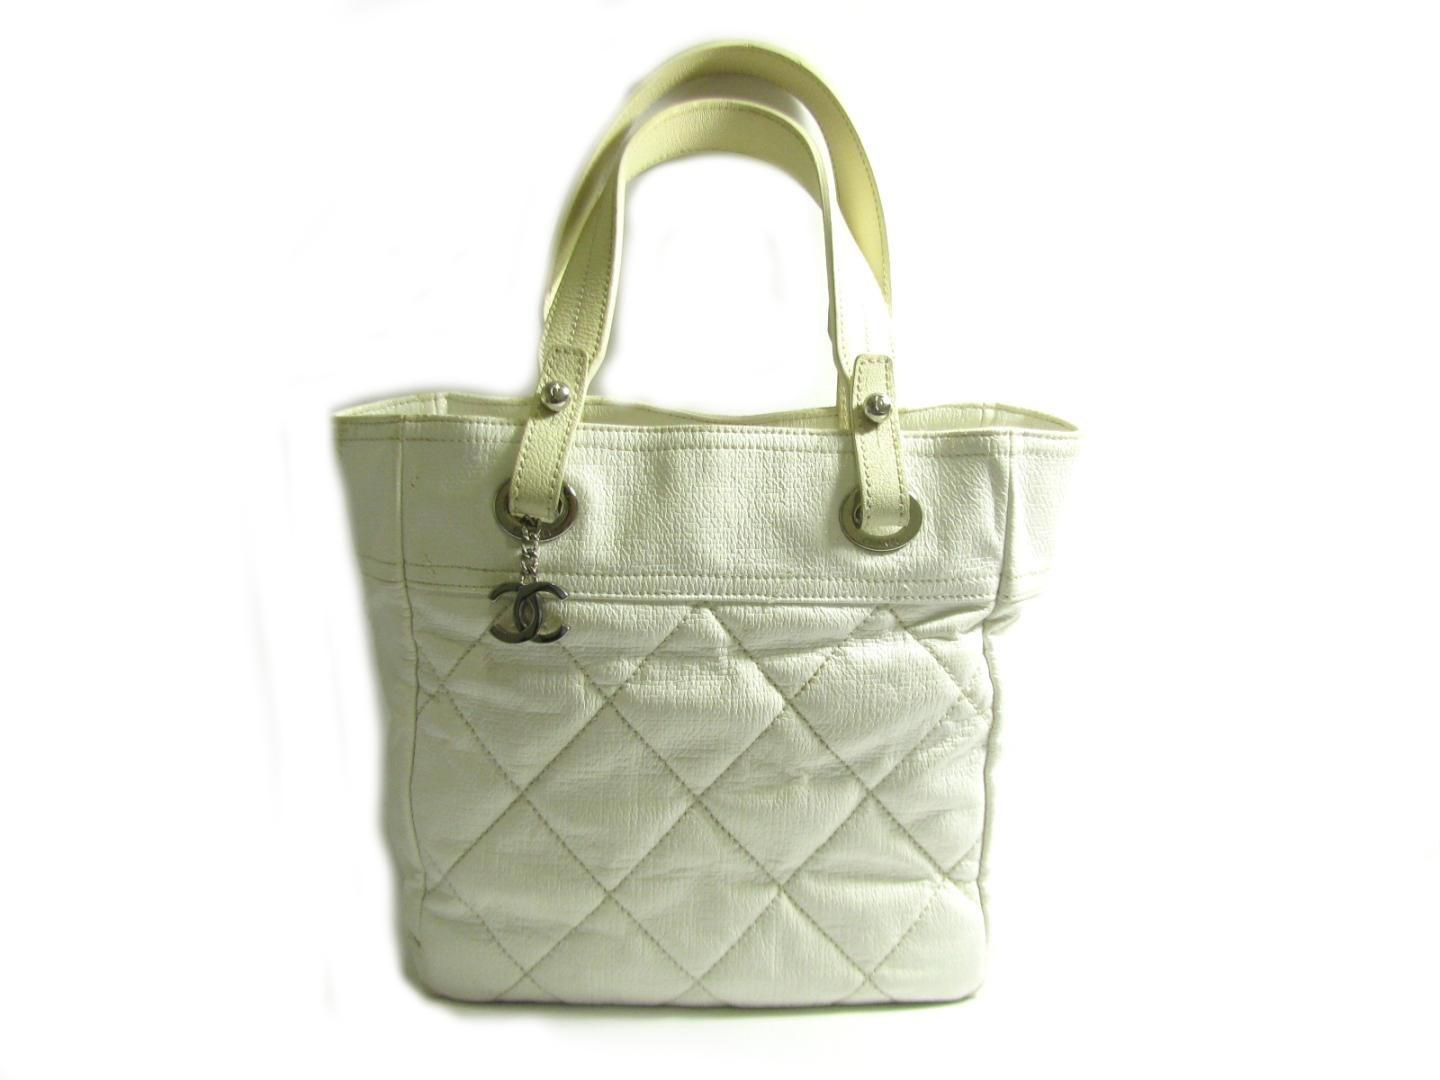 5027bd0df387c Lyst - Chanel Authentic Paris Biarritz Tote Pm Tote Bag Quilted ...